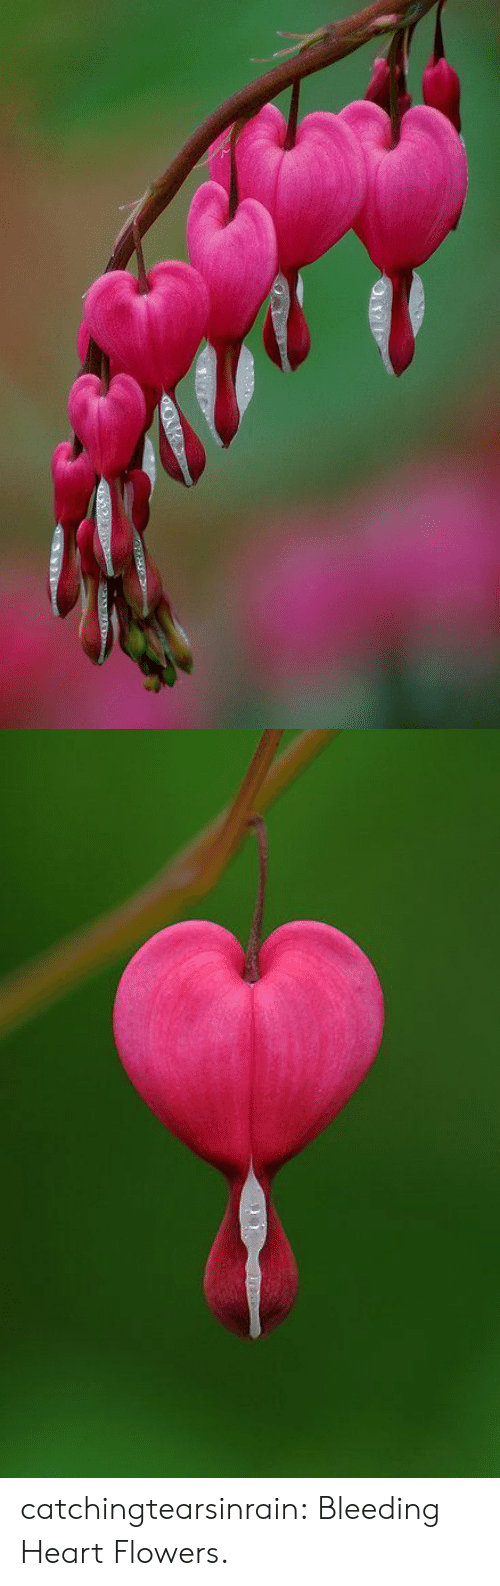 Flowers: catchingtearsinrain: Bleeding Heart Flowers.